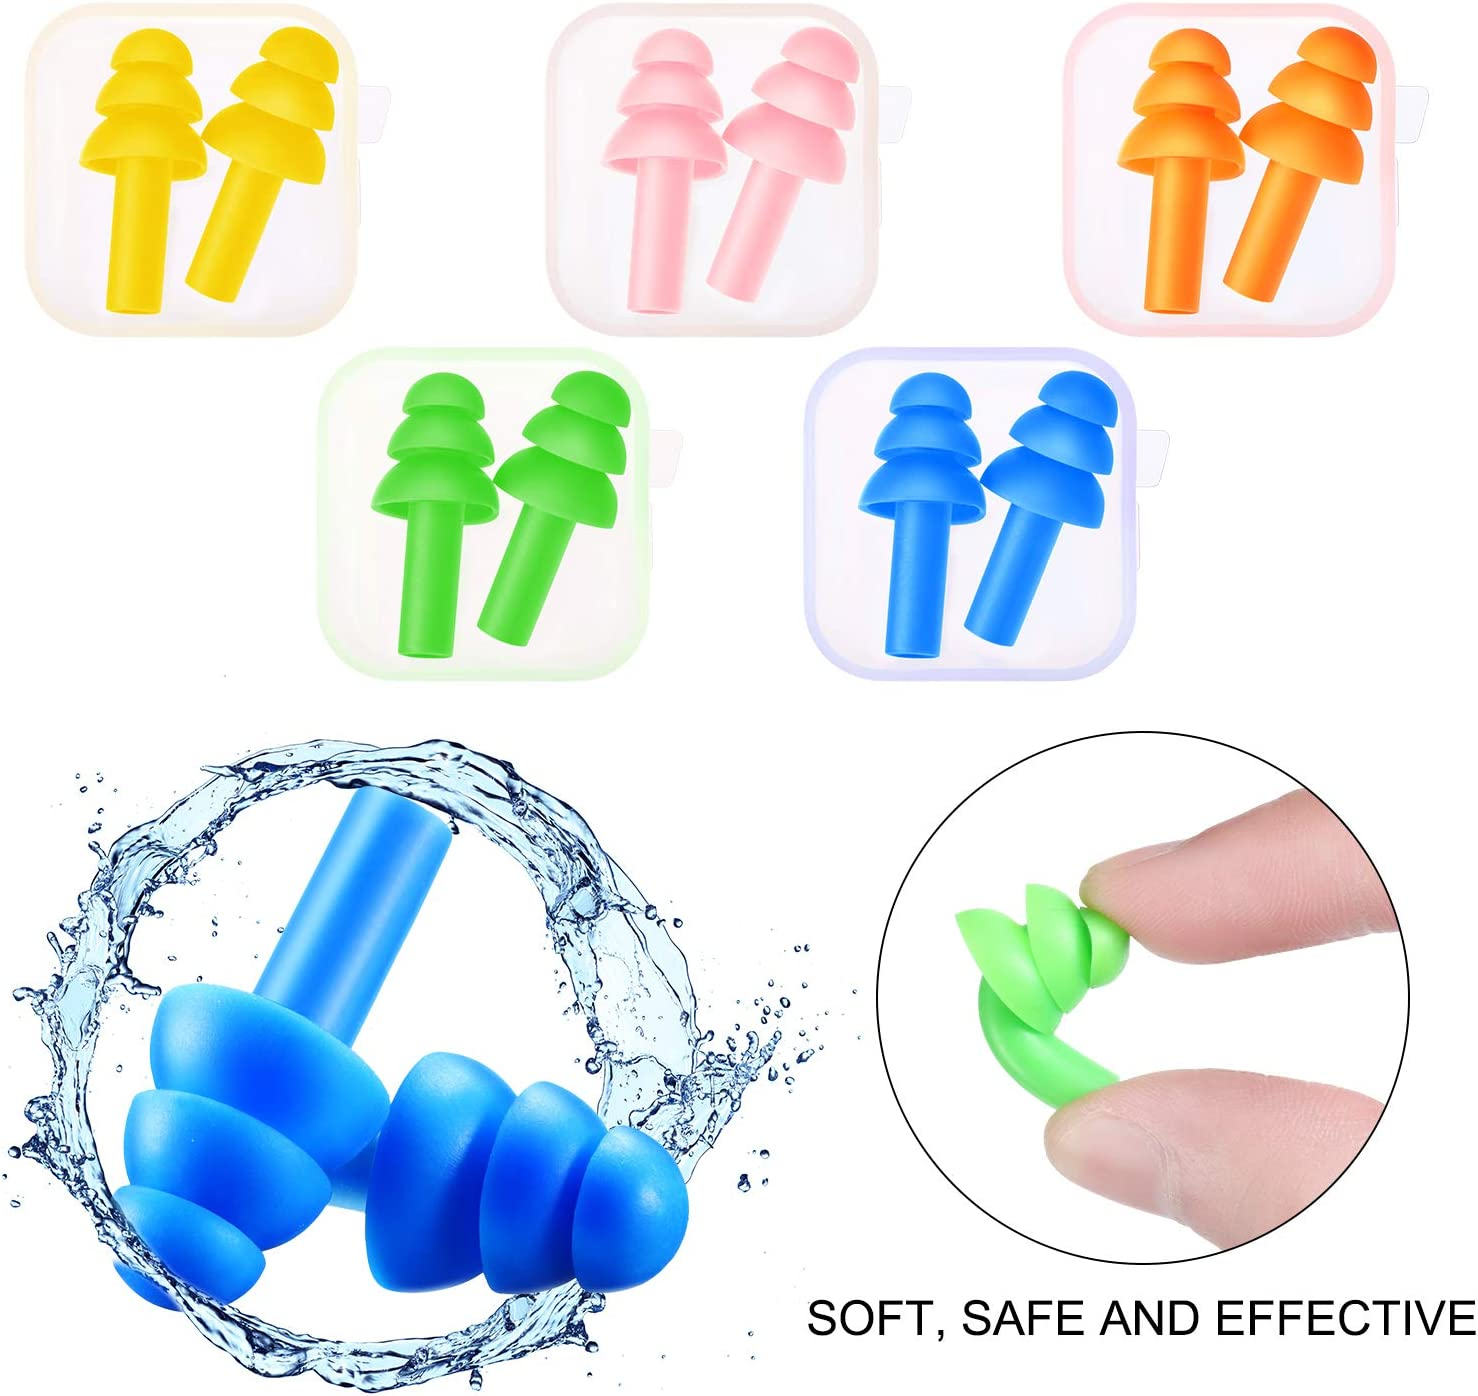 5 Colors 5 Pairs Reusable Silicone Ear Plugs Soft Waterproof Noise Reduction Earplugs Sound Blocking Earplugs with Case and Pouch for Sleeping Swimming Concert Airplanes